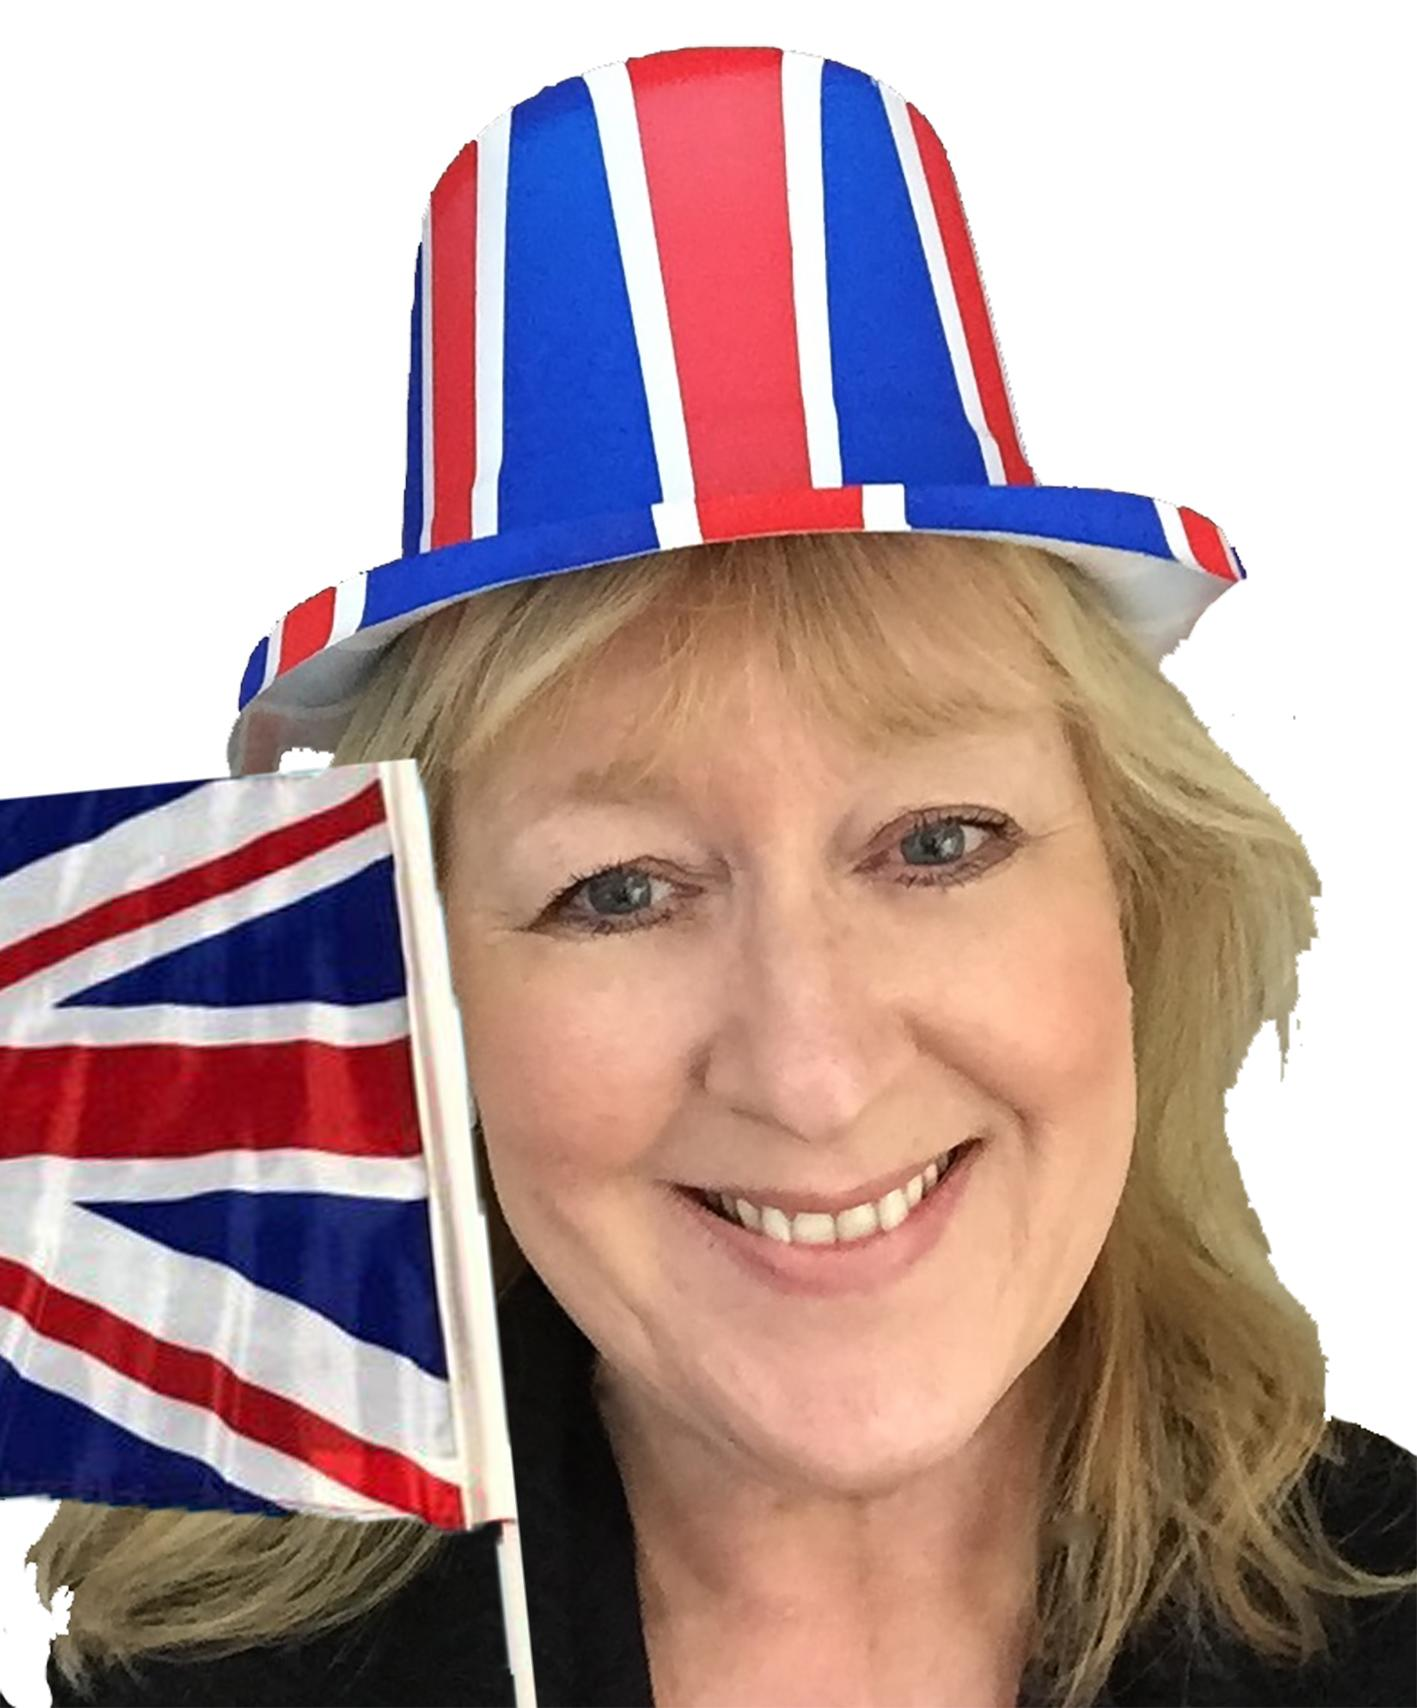 Union Jack Topper Hat and Flag